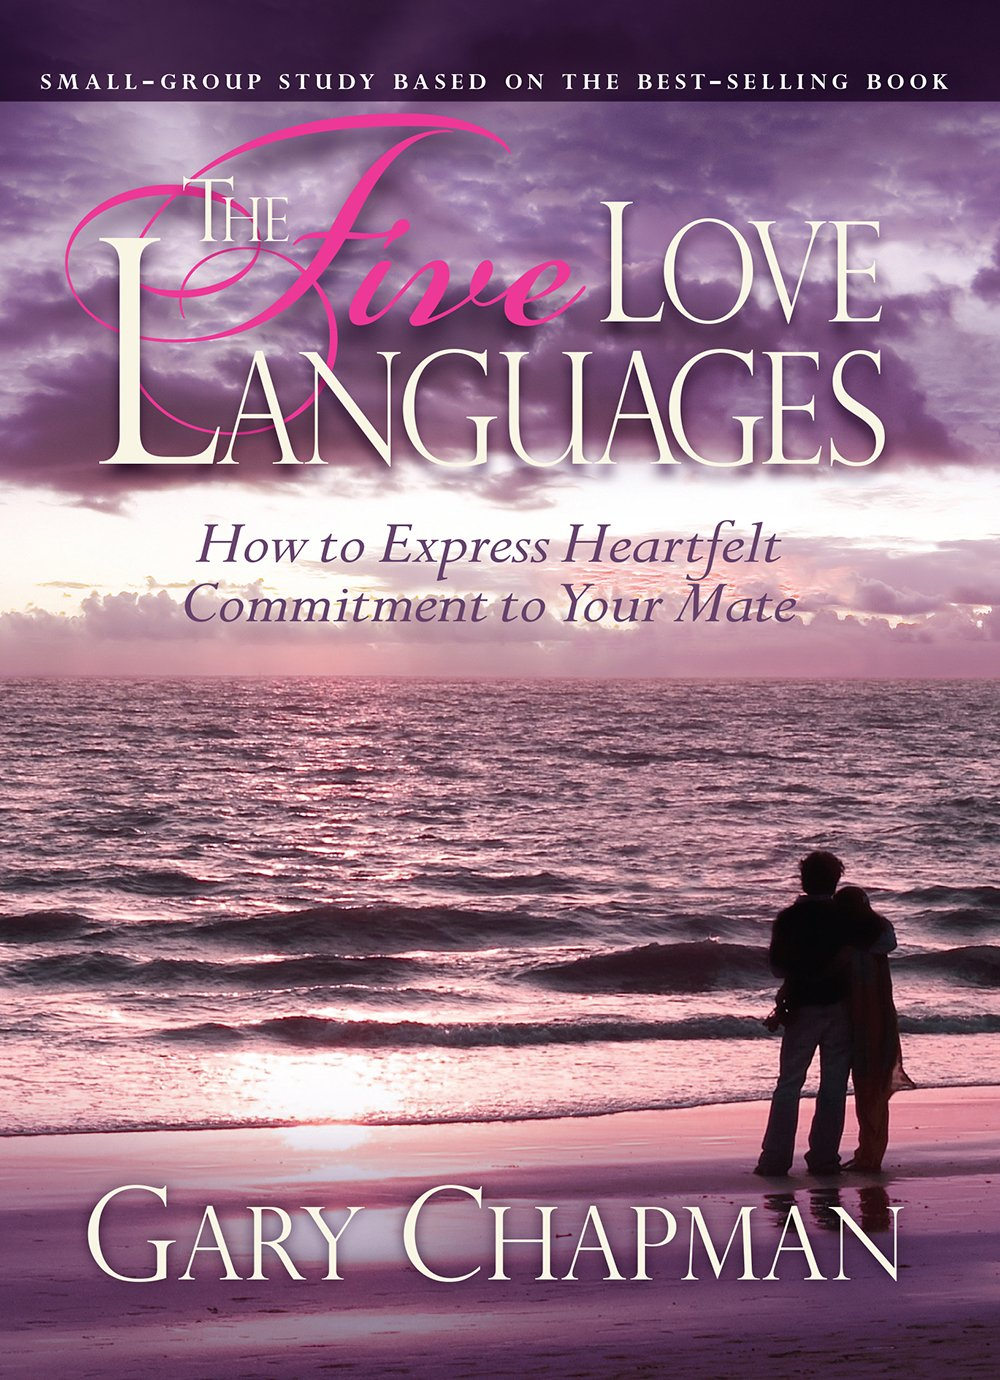 The Five Love Languages - Leader Kit REVISED